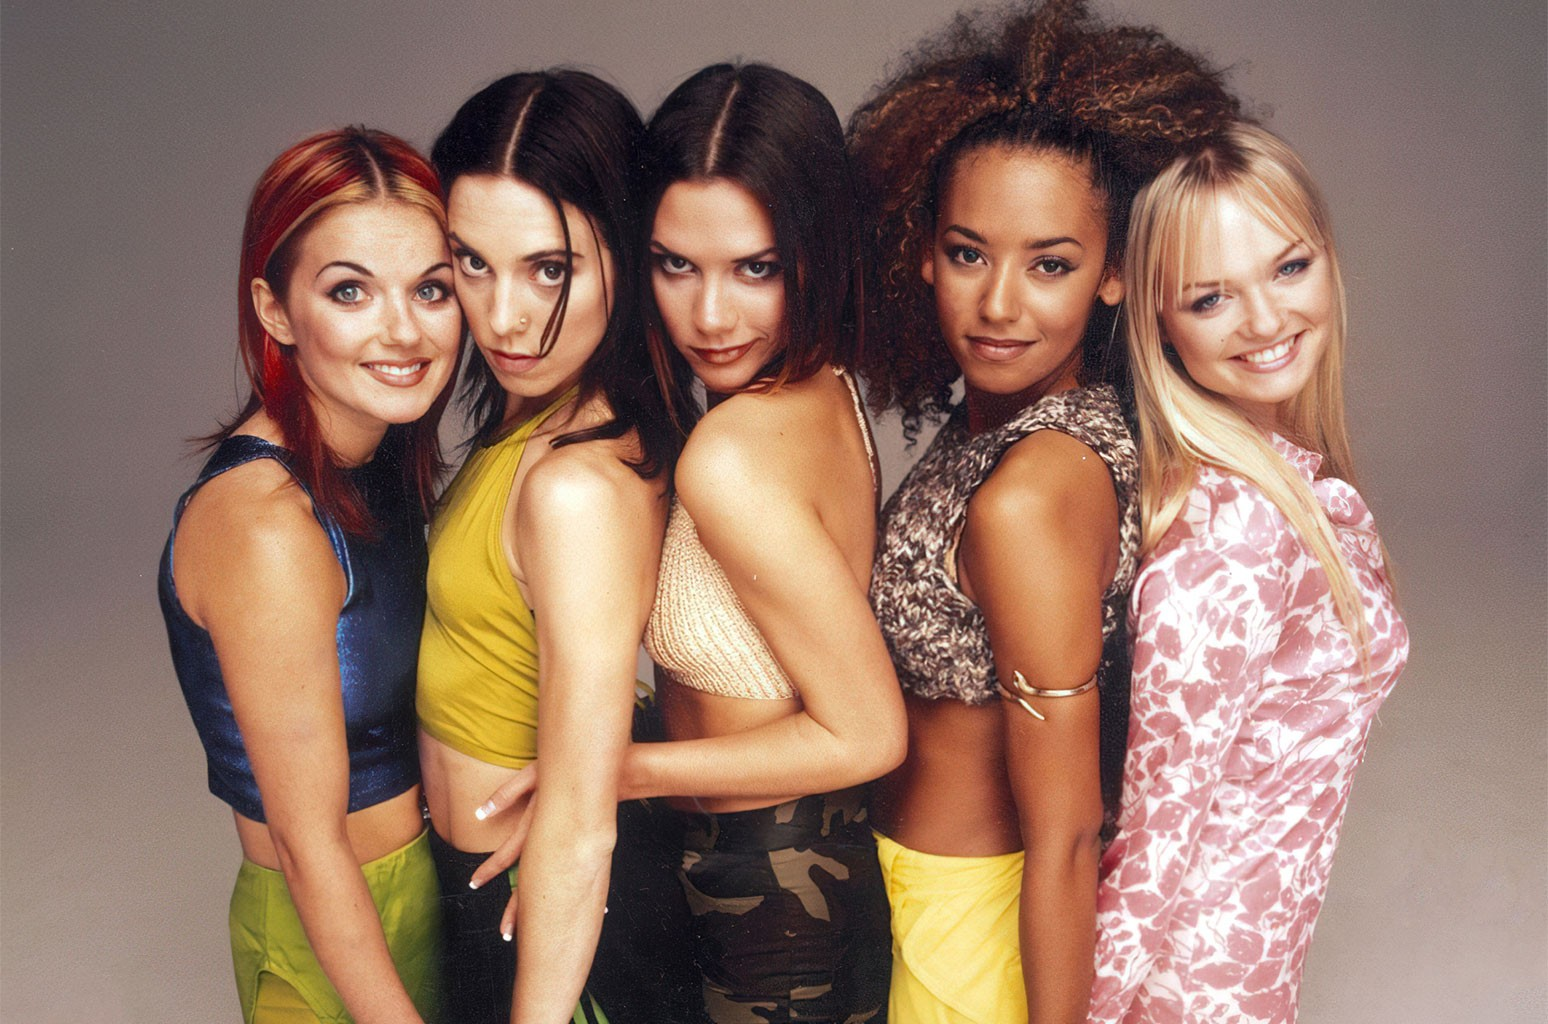 Wannabe Everywhere: Spice Girls Partner with Universal's Bravado for Merch and Licensing